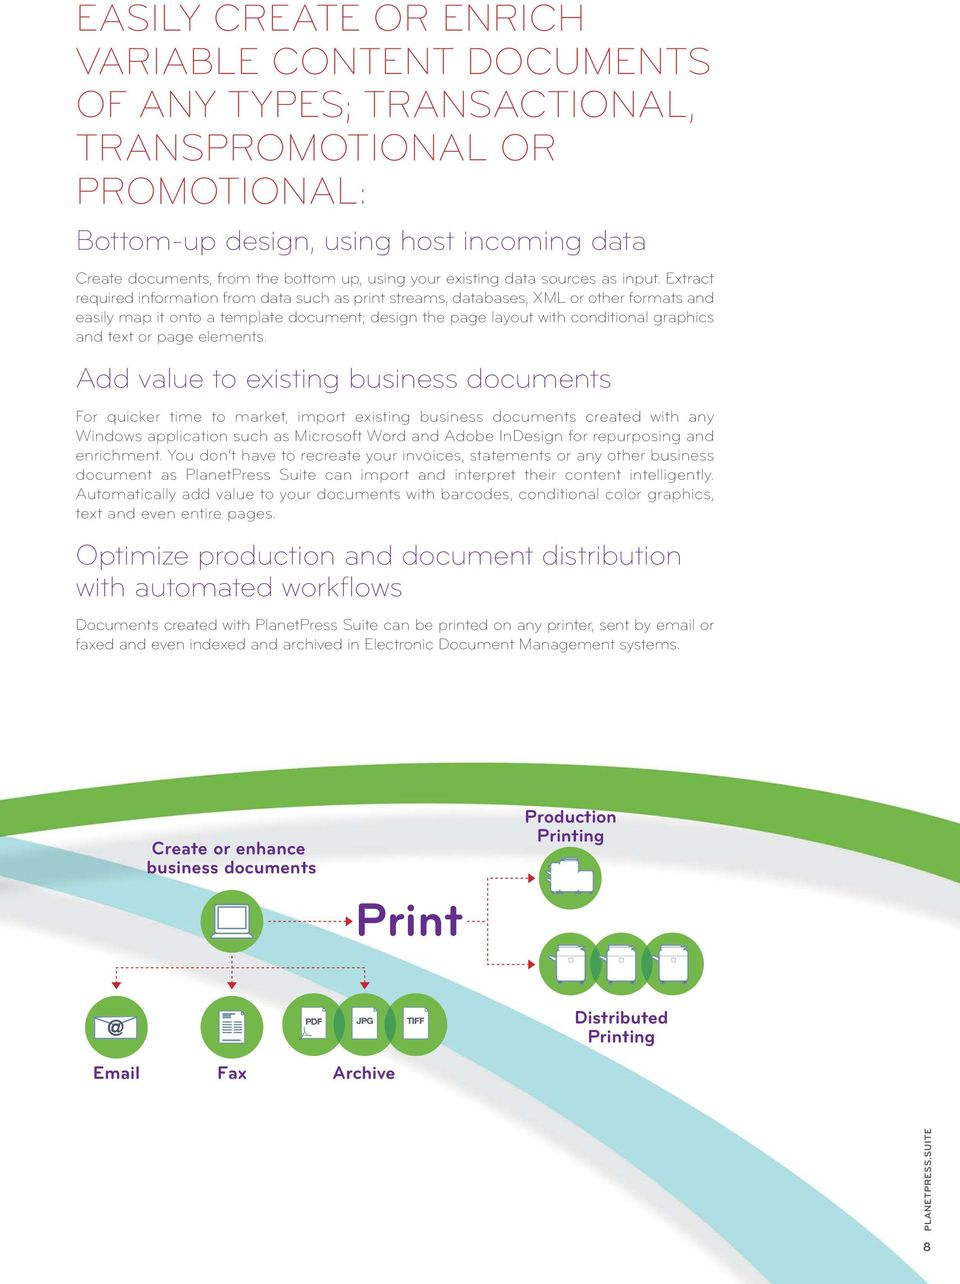 Extract required information from data such as print streams, databases, XML or other formats and easily map it onto a template document; design the page layout with conditional graphics and text or